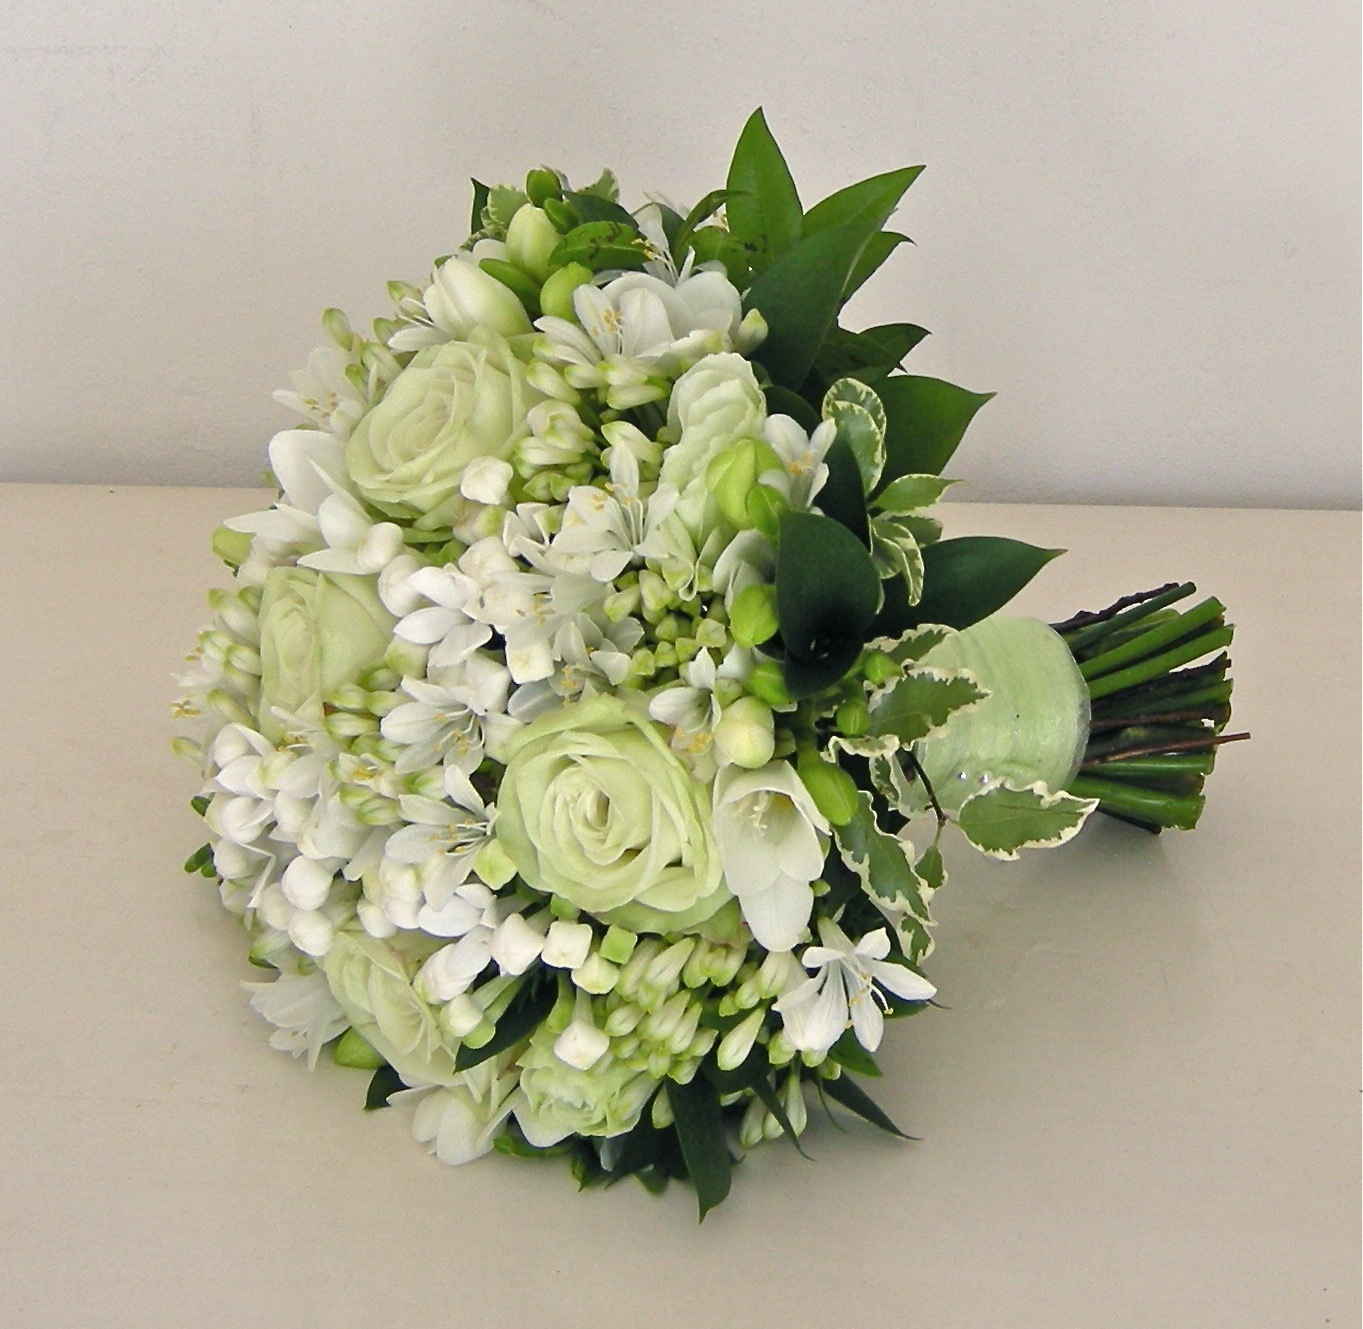 Wedding White Roses: Wedding Flowers Blog: Alison's Pale Green And White